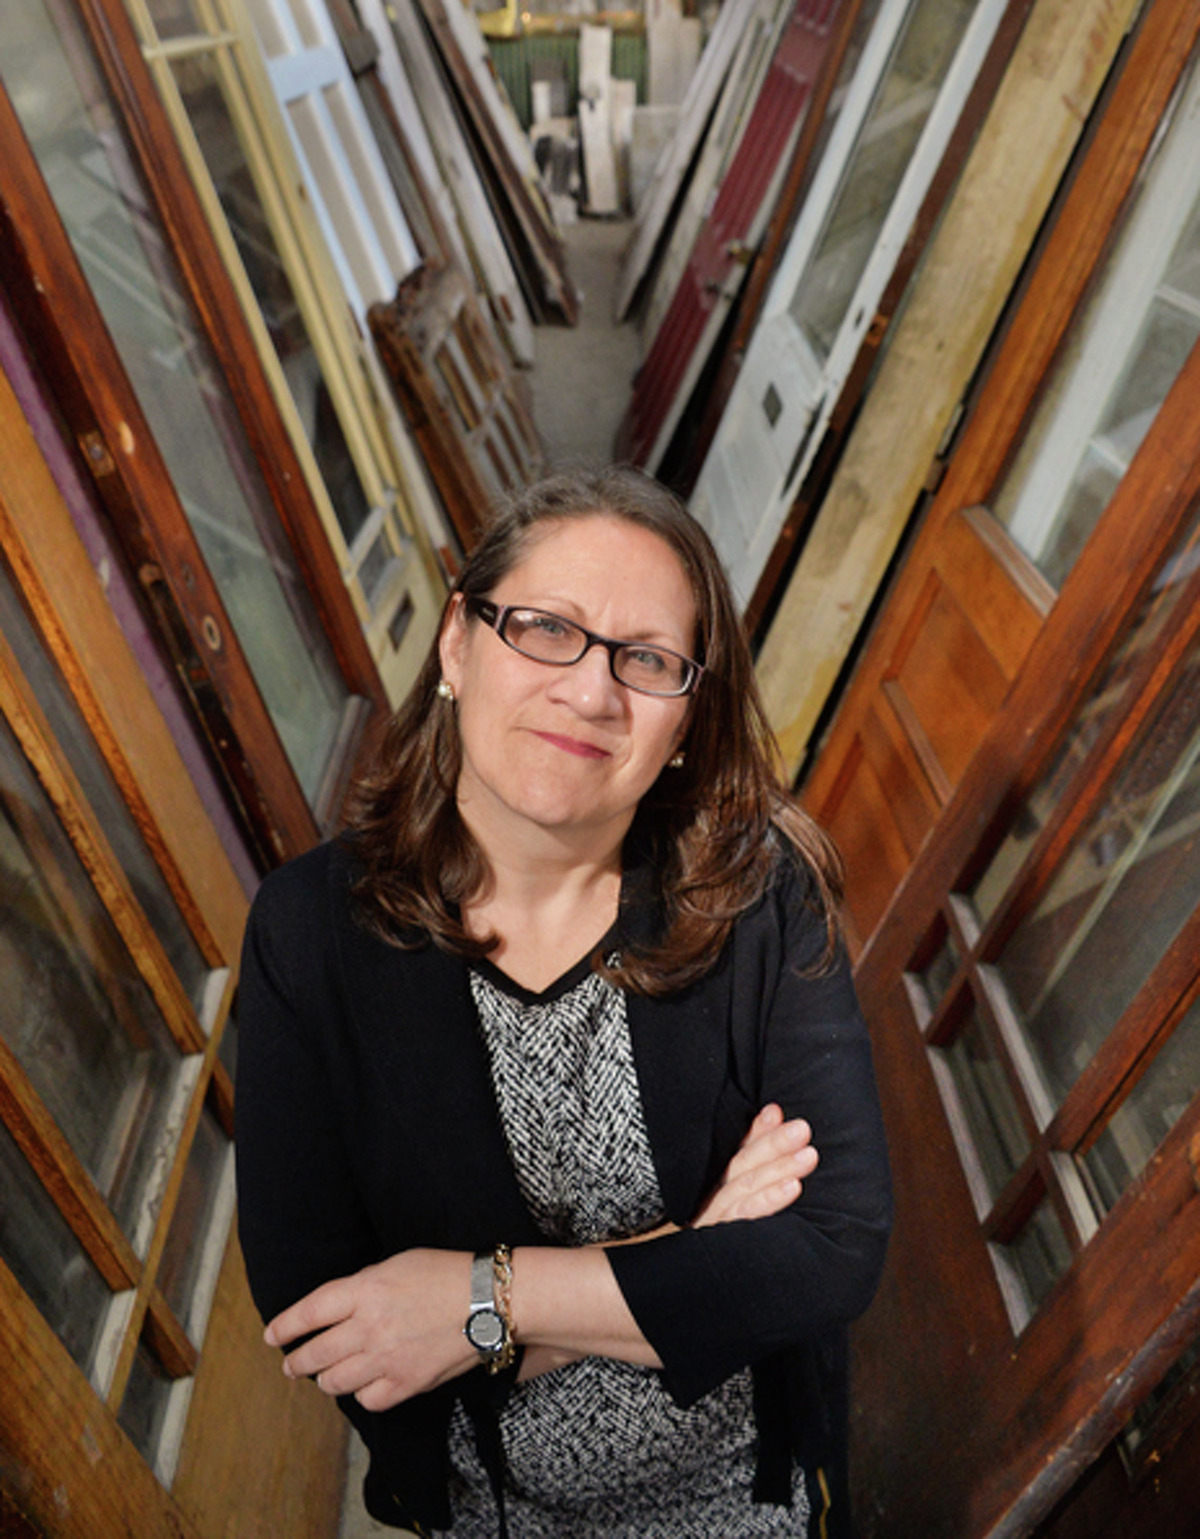 Executive director Susan Holland in an aisle of premium doors in Historic Albany Foundation's warehouse Tuesday Jan. 13, 2015, in Albany, NY.